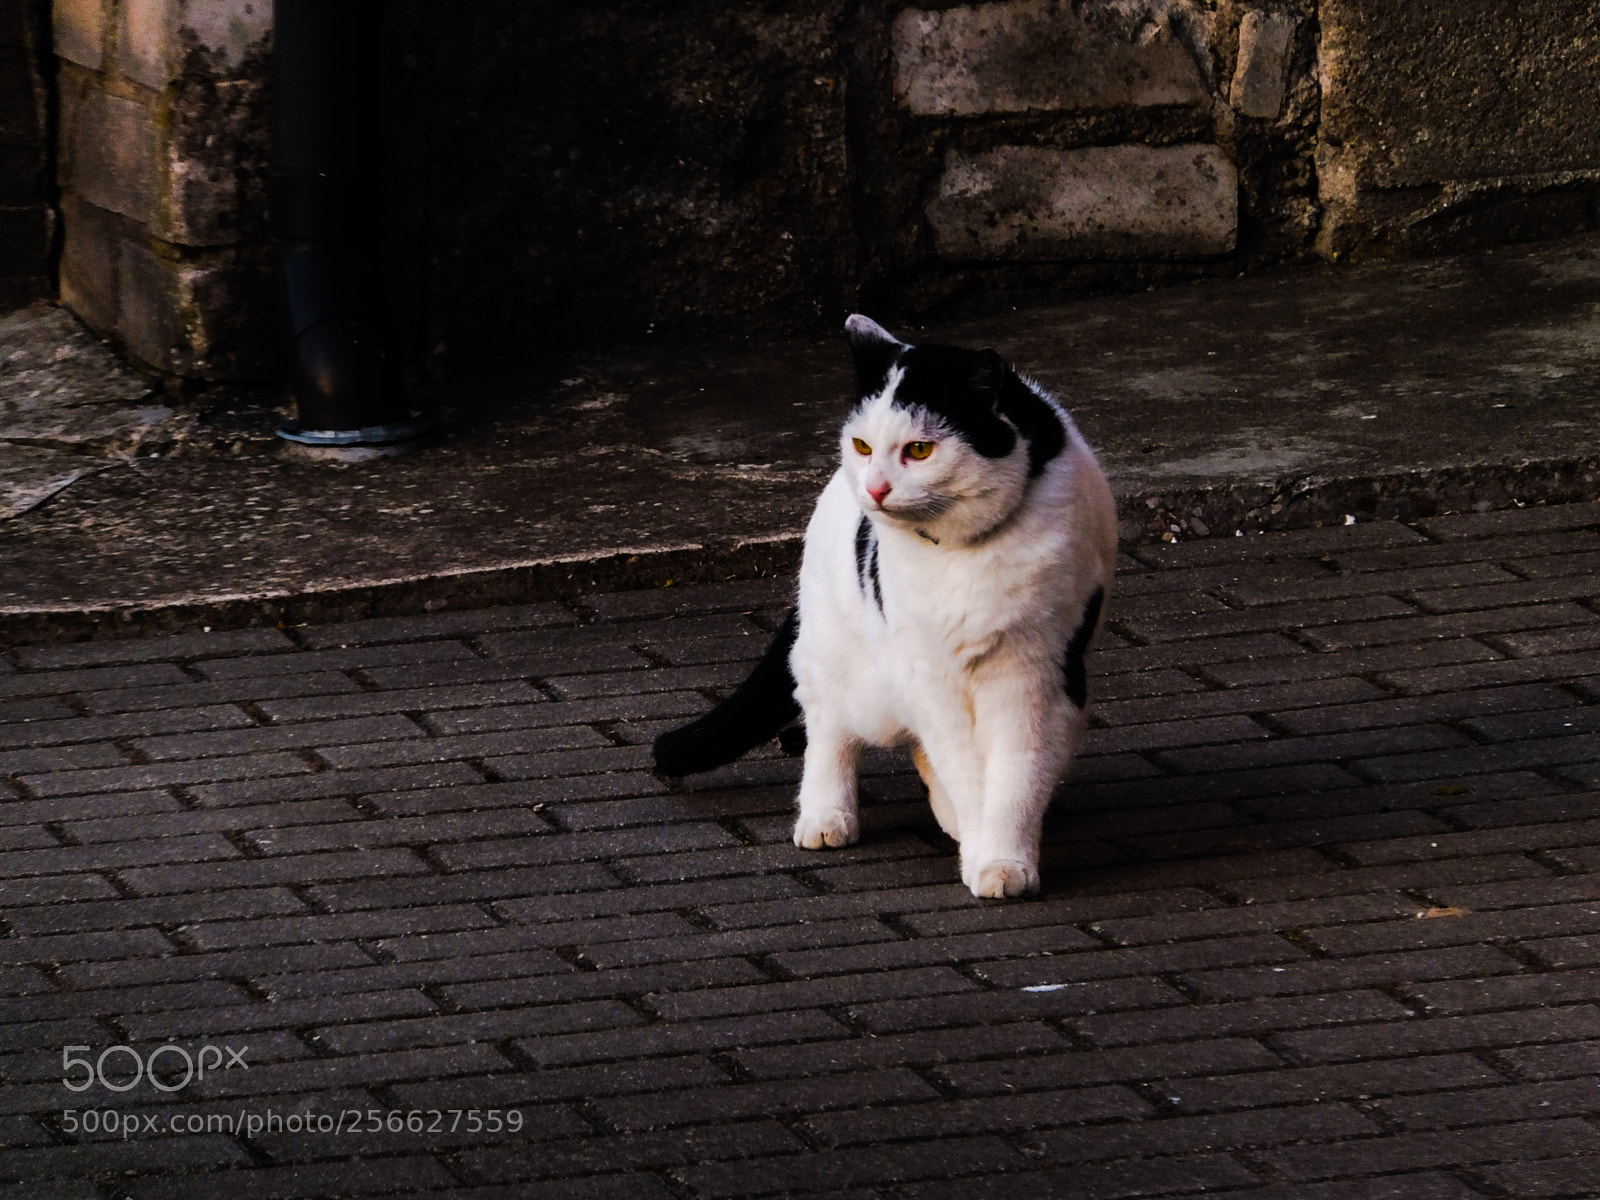 """Fujifilm FinePix F660EXR sample photo. """"Cat on the road"""" photography"""